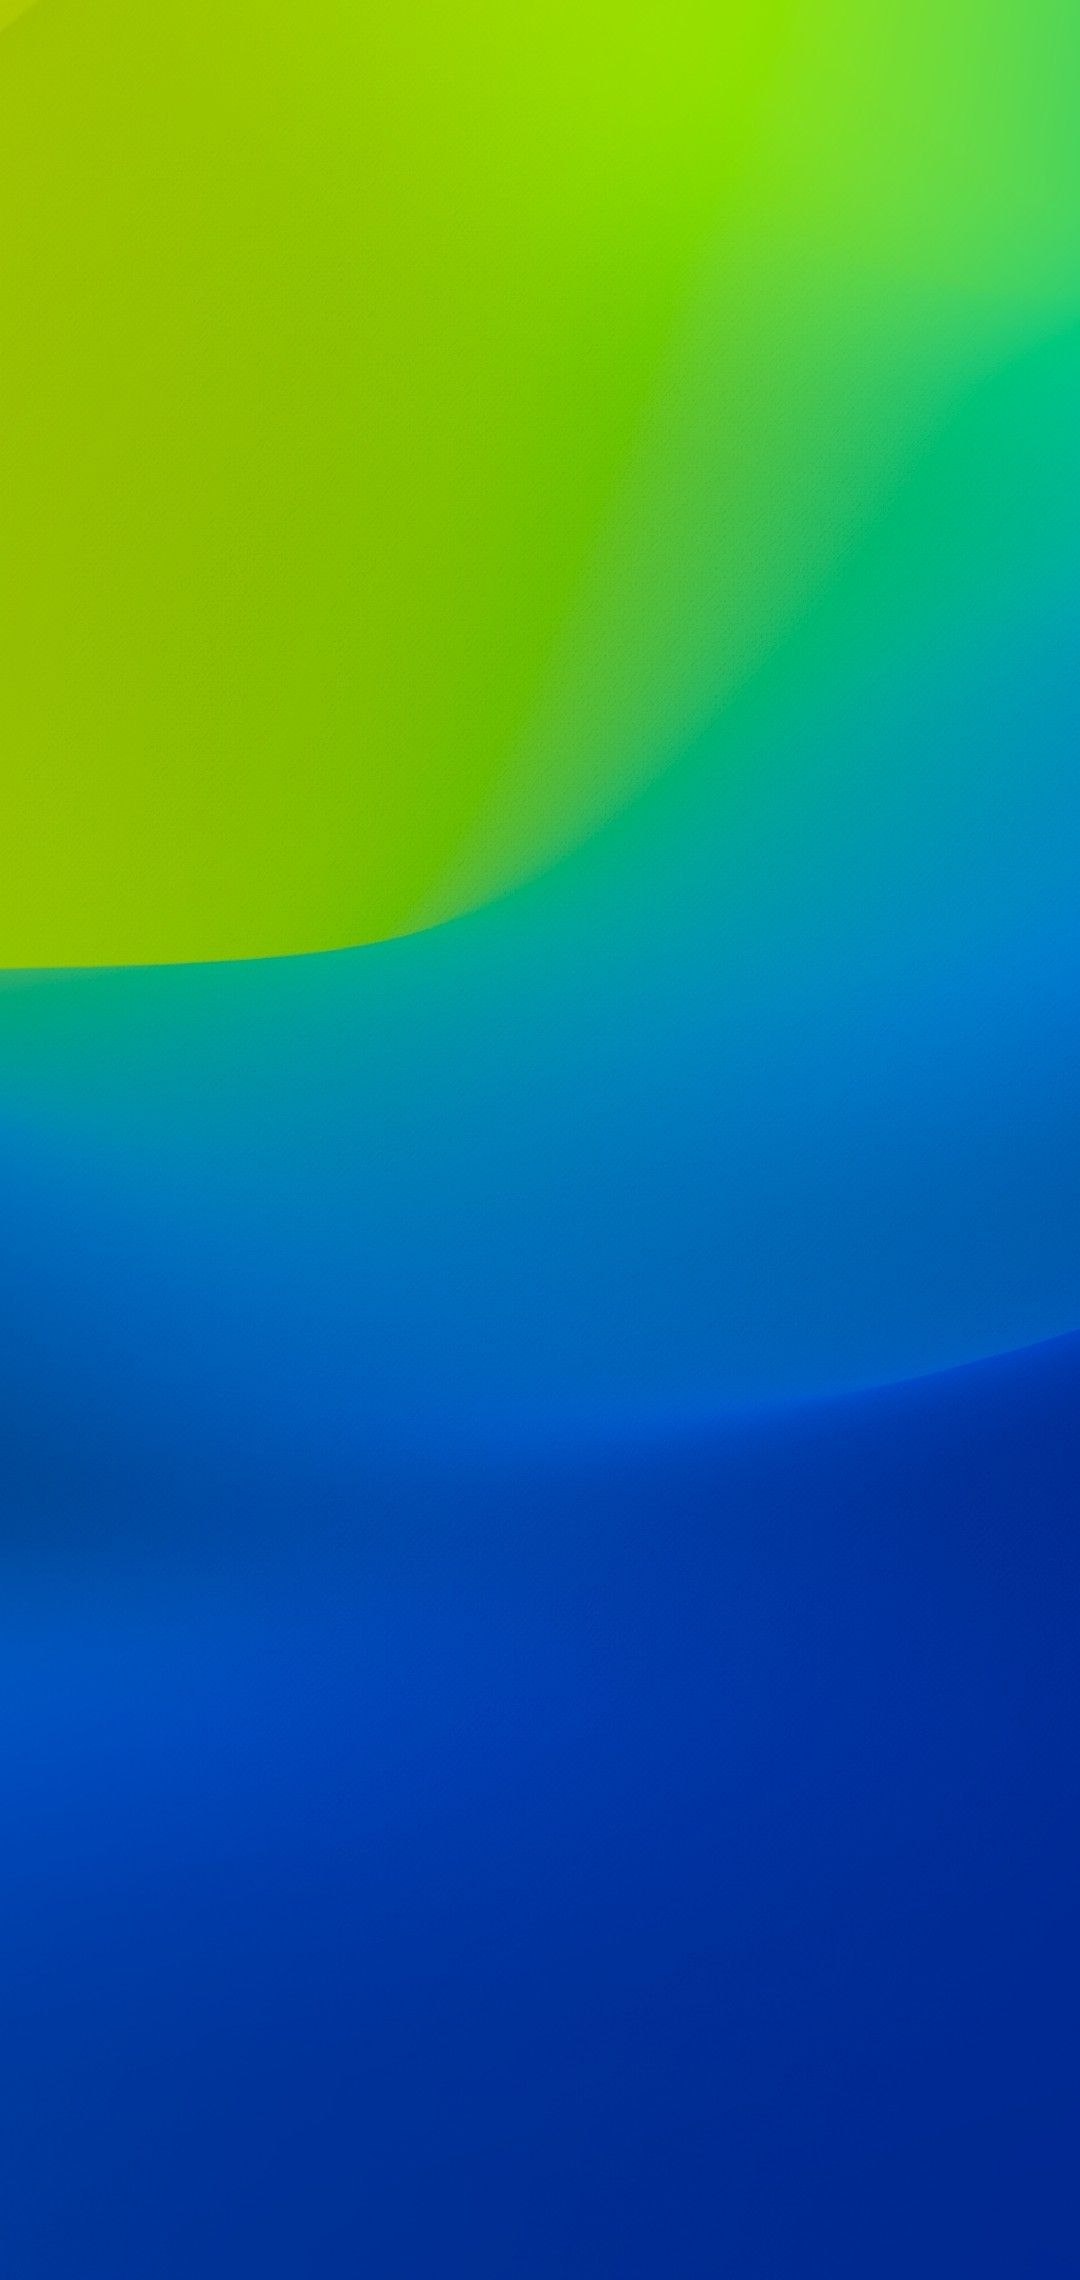 iOS 12, iPhone X, blue, green, clean, simple, abstract ...